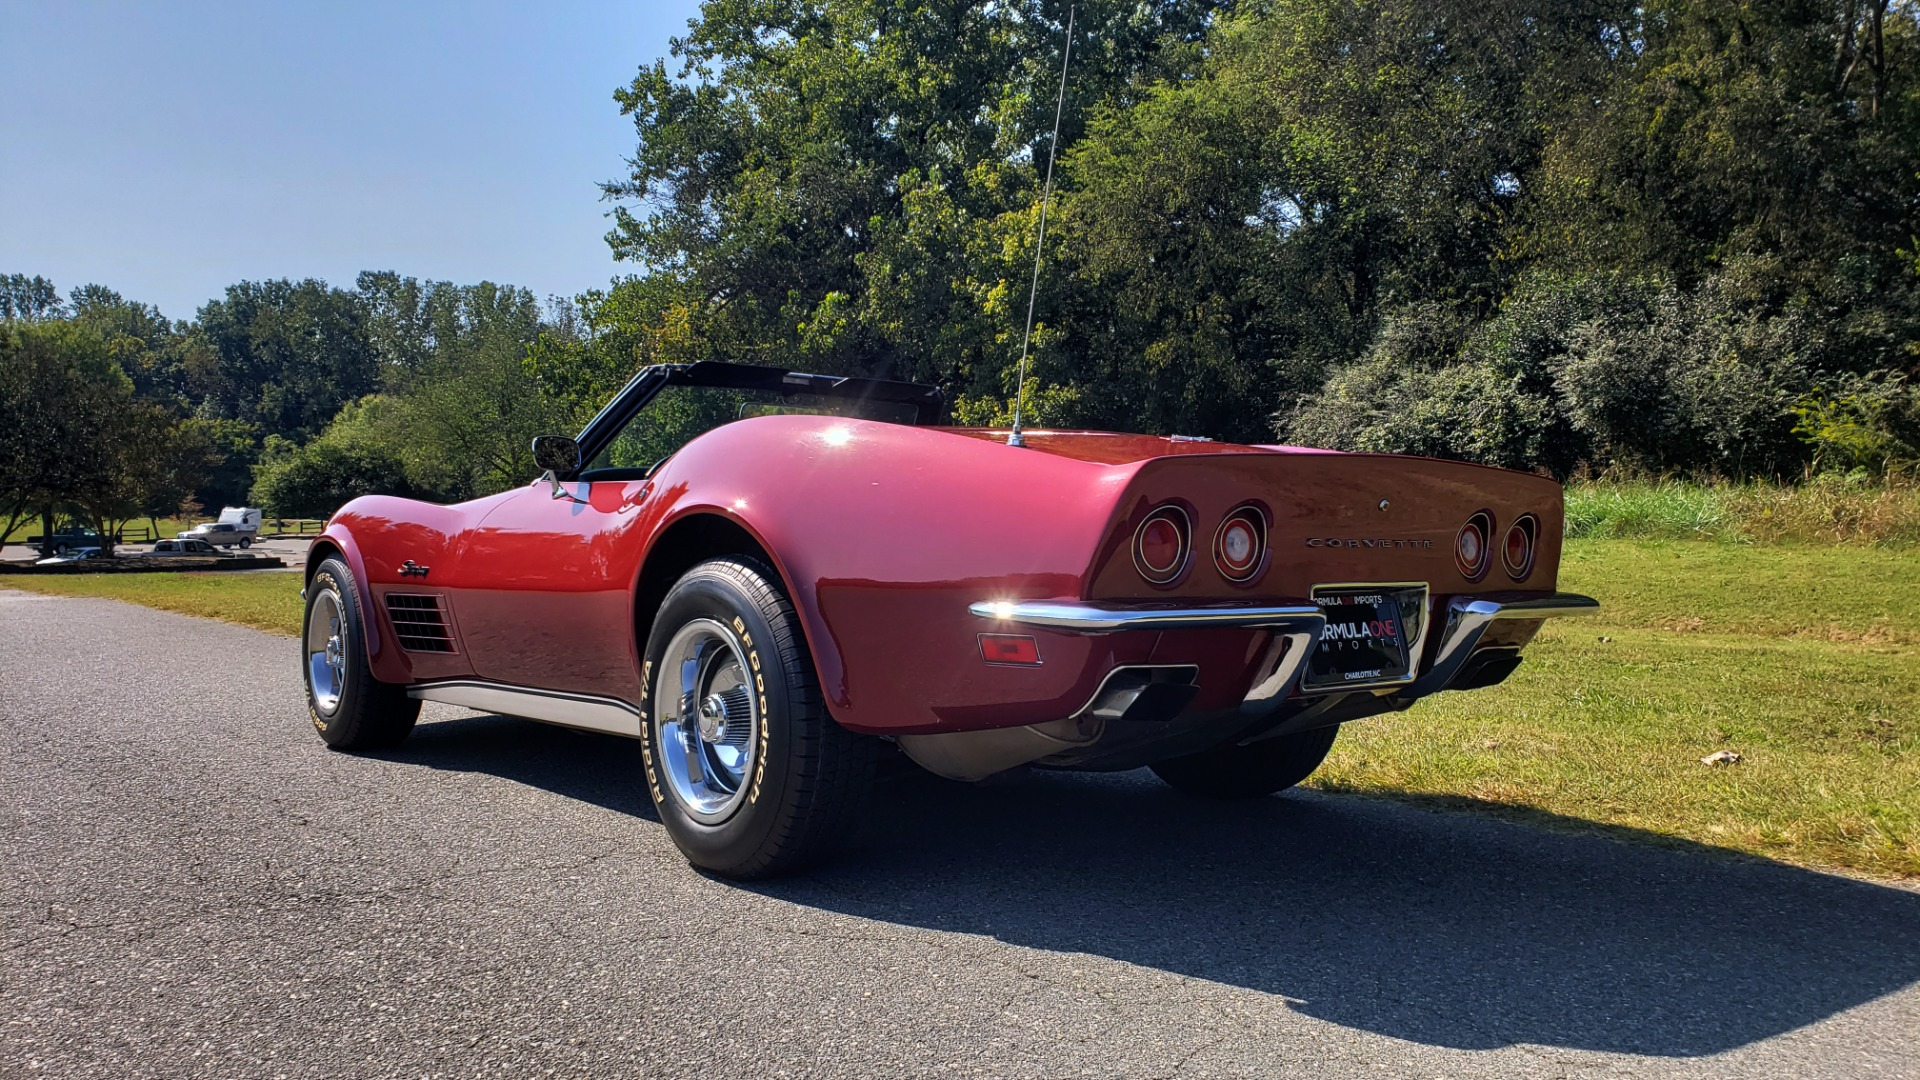 Used 1970 Chevrolet CORVETTE CONVERTIBLE / 454CI V8 / AUTO / NEW BLACK TOP / NUMBERS MATCH for sale $50,499 at Formula Imports in Charlotte NC 28227 7